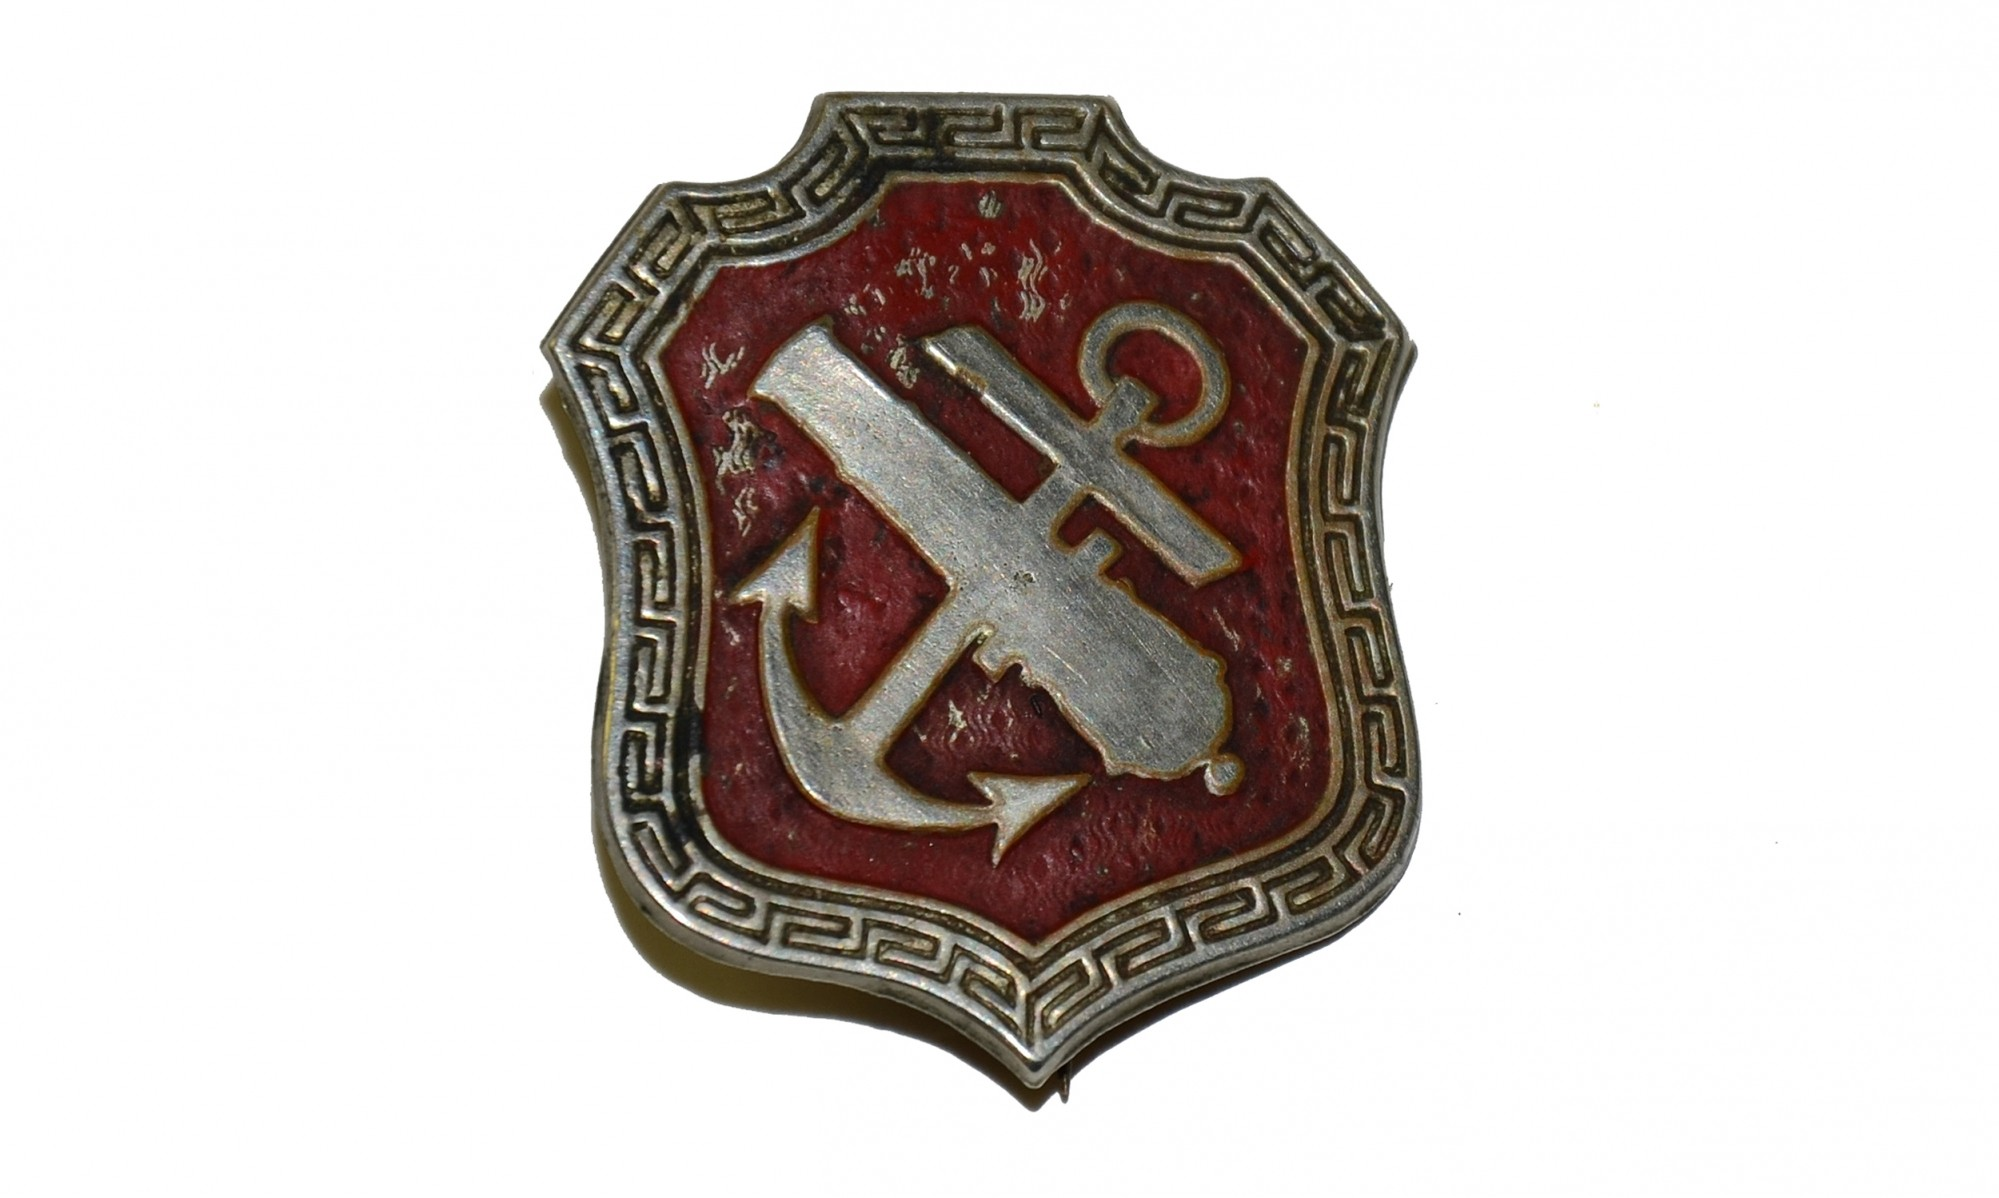 ORIGINAL CORPS BADGE OF THE FEDERAL NINTH ARMY CORPS' 1ST DIVISION